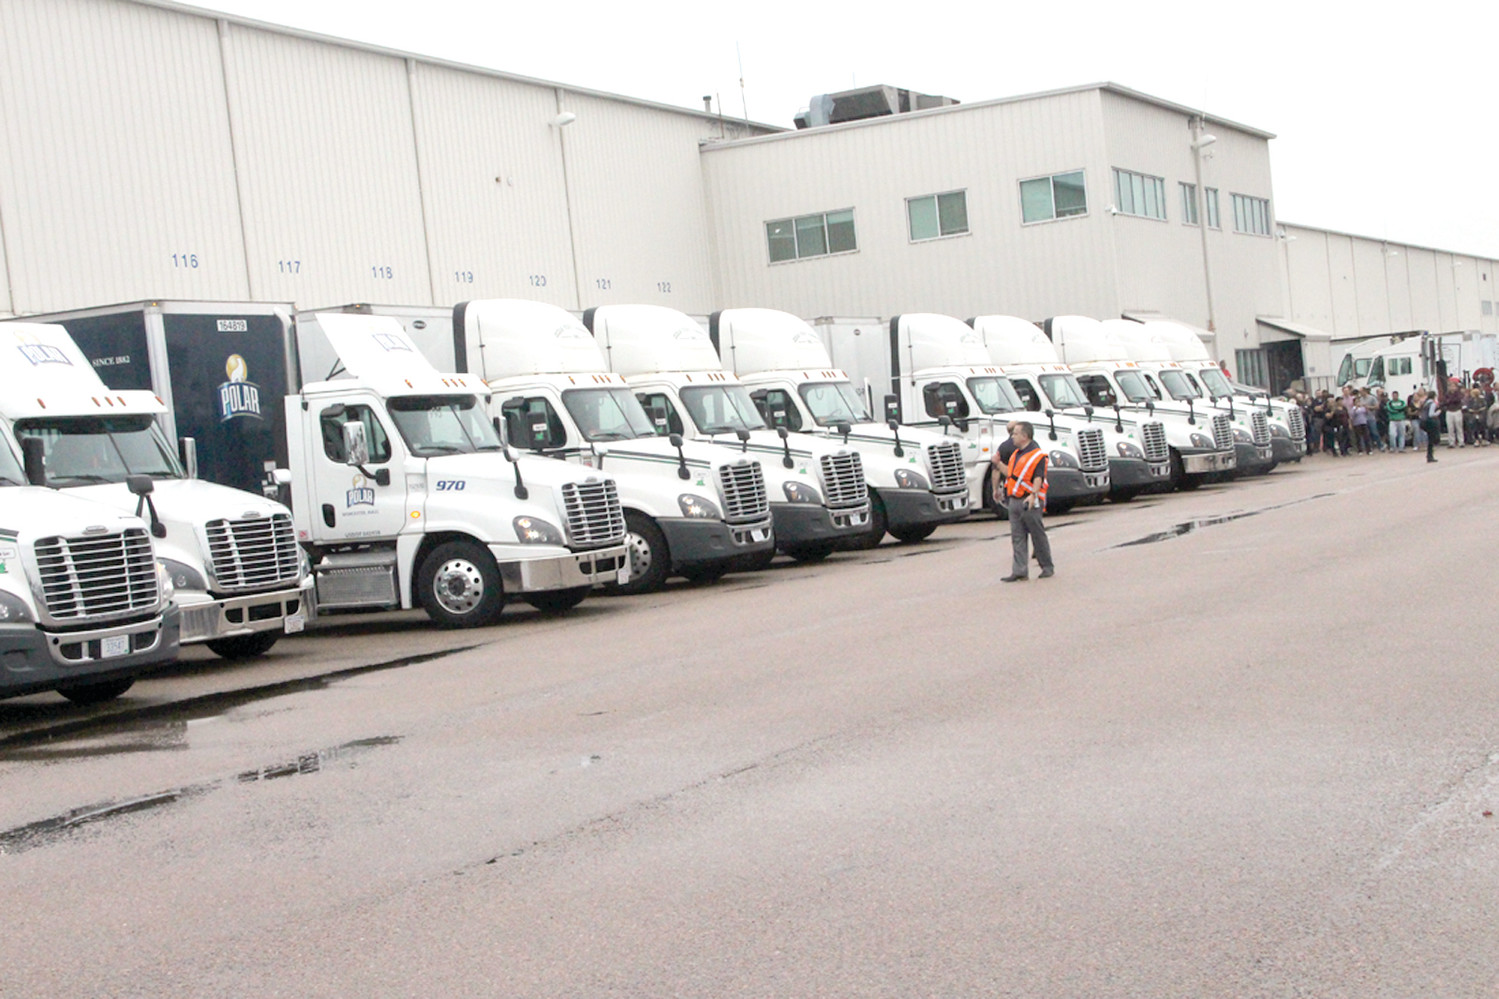 Job Lot convoy rolls to deliver 11 million meals | Warwick